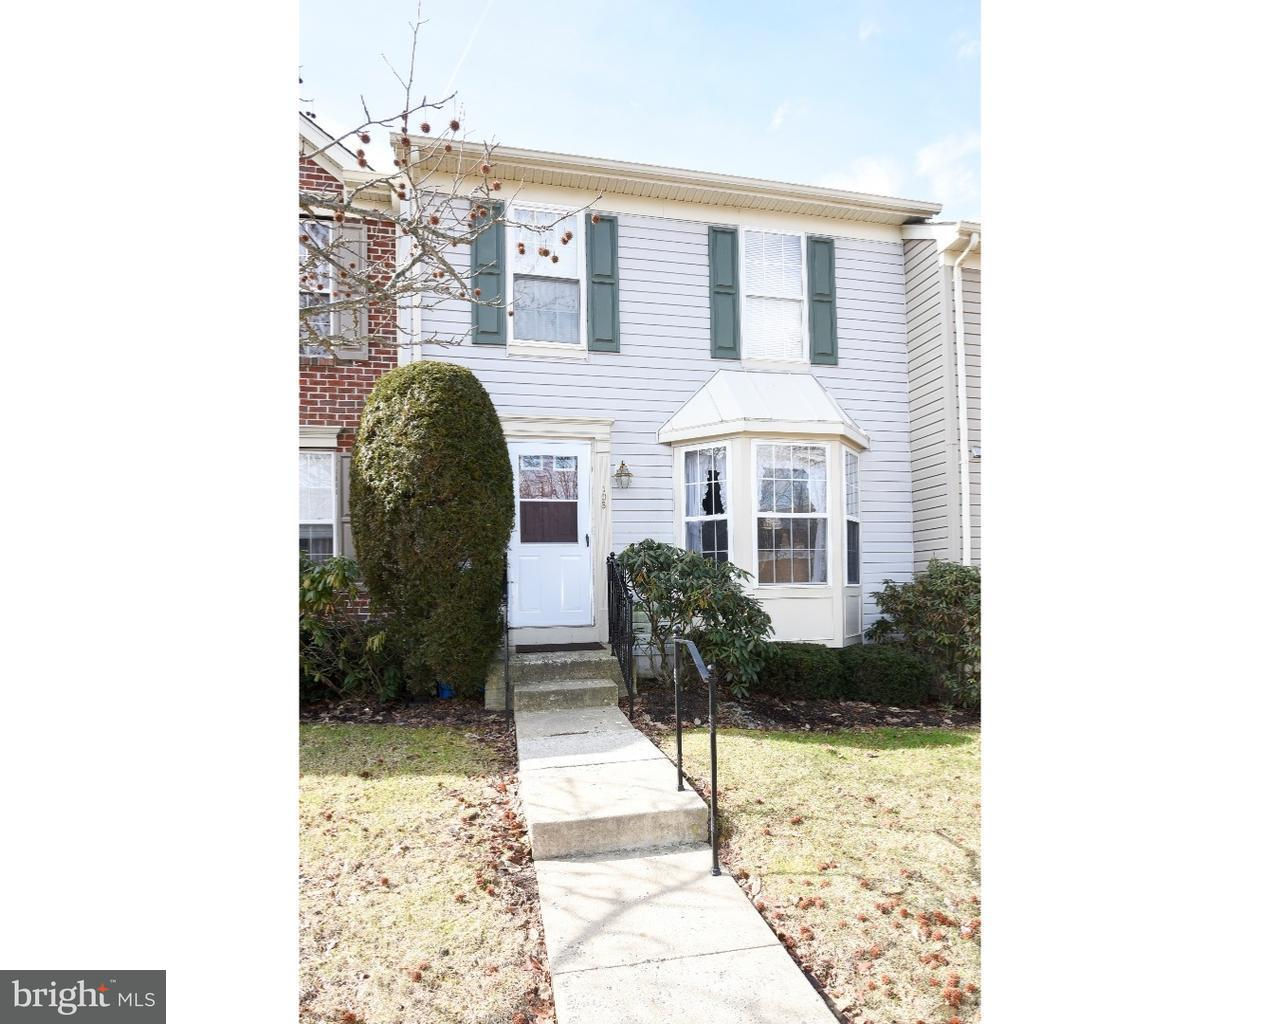 108 MADISON CT, NEW HOPE - Listed at $369,000, NEW HOPE